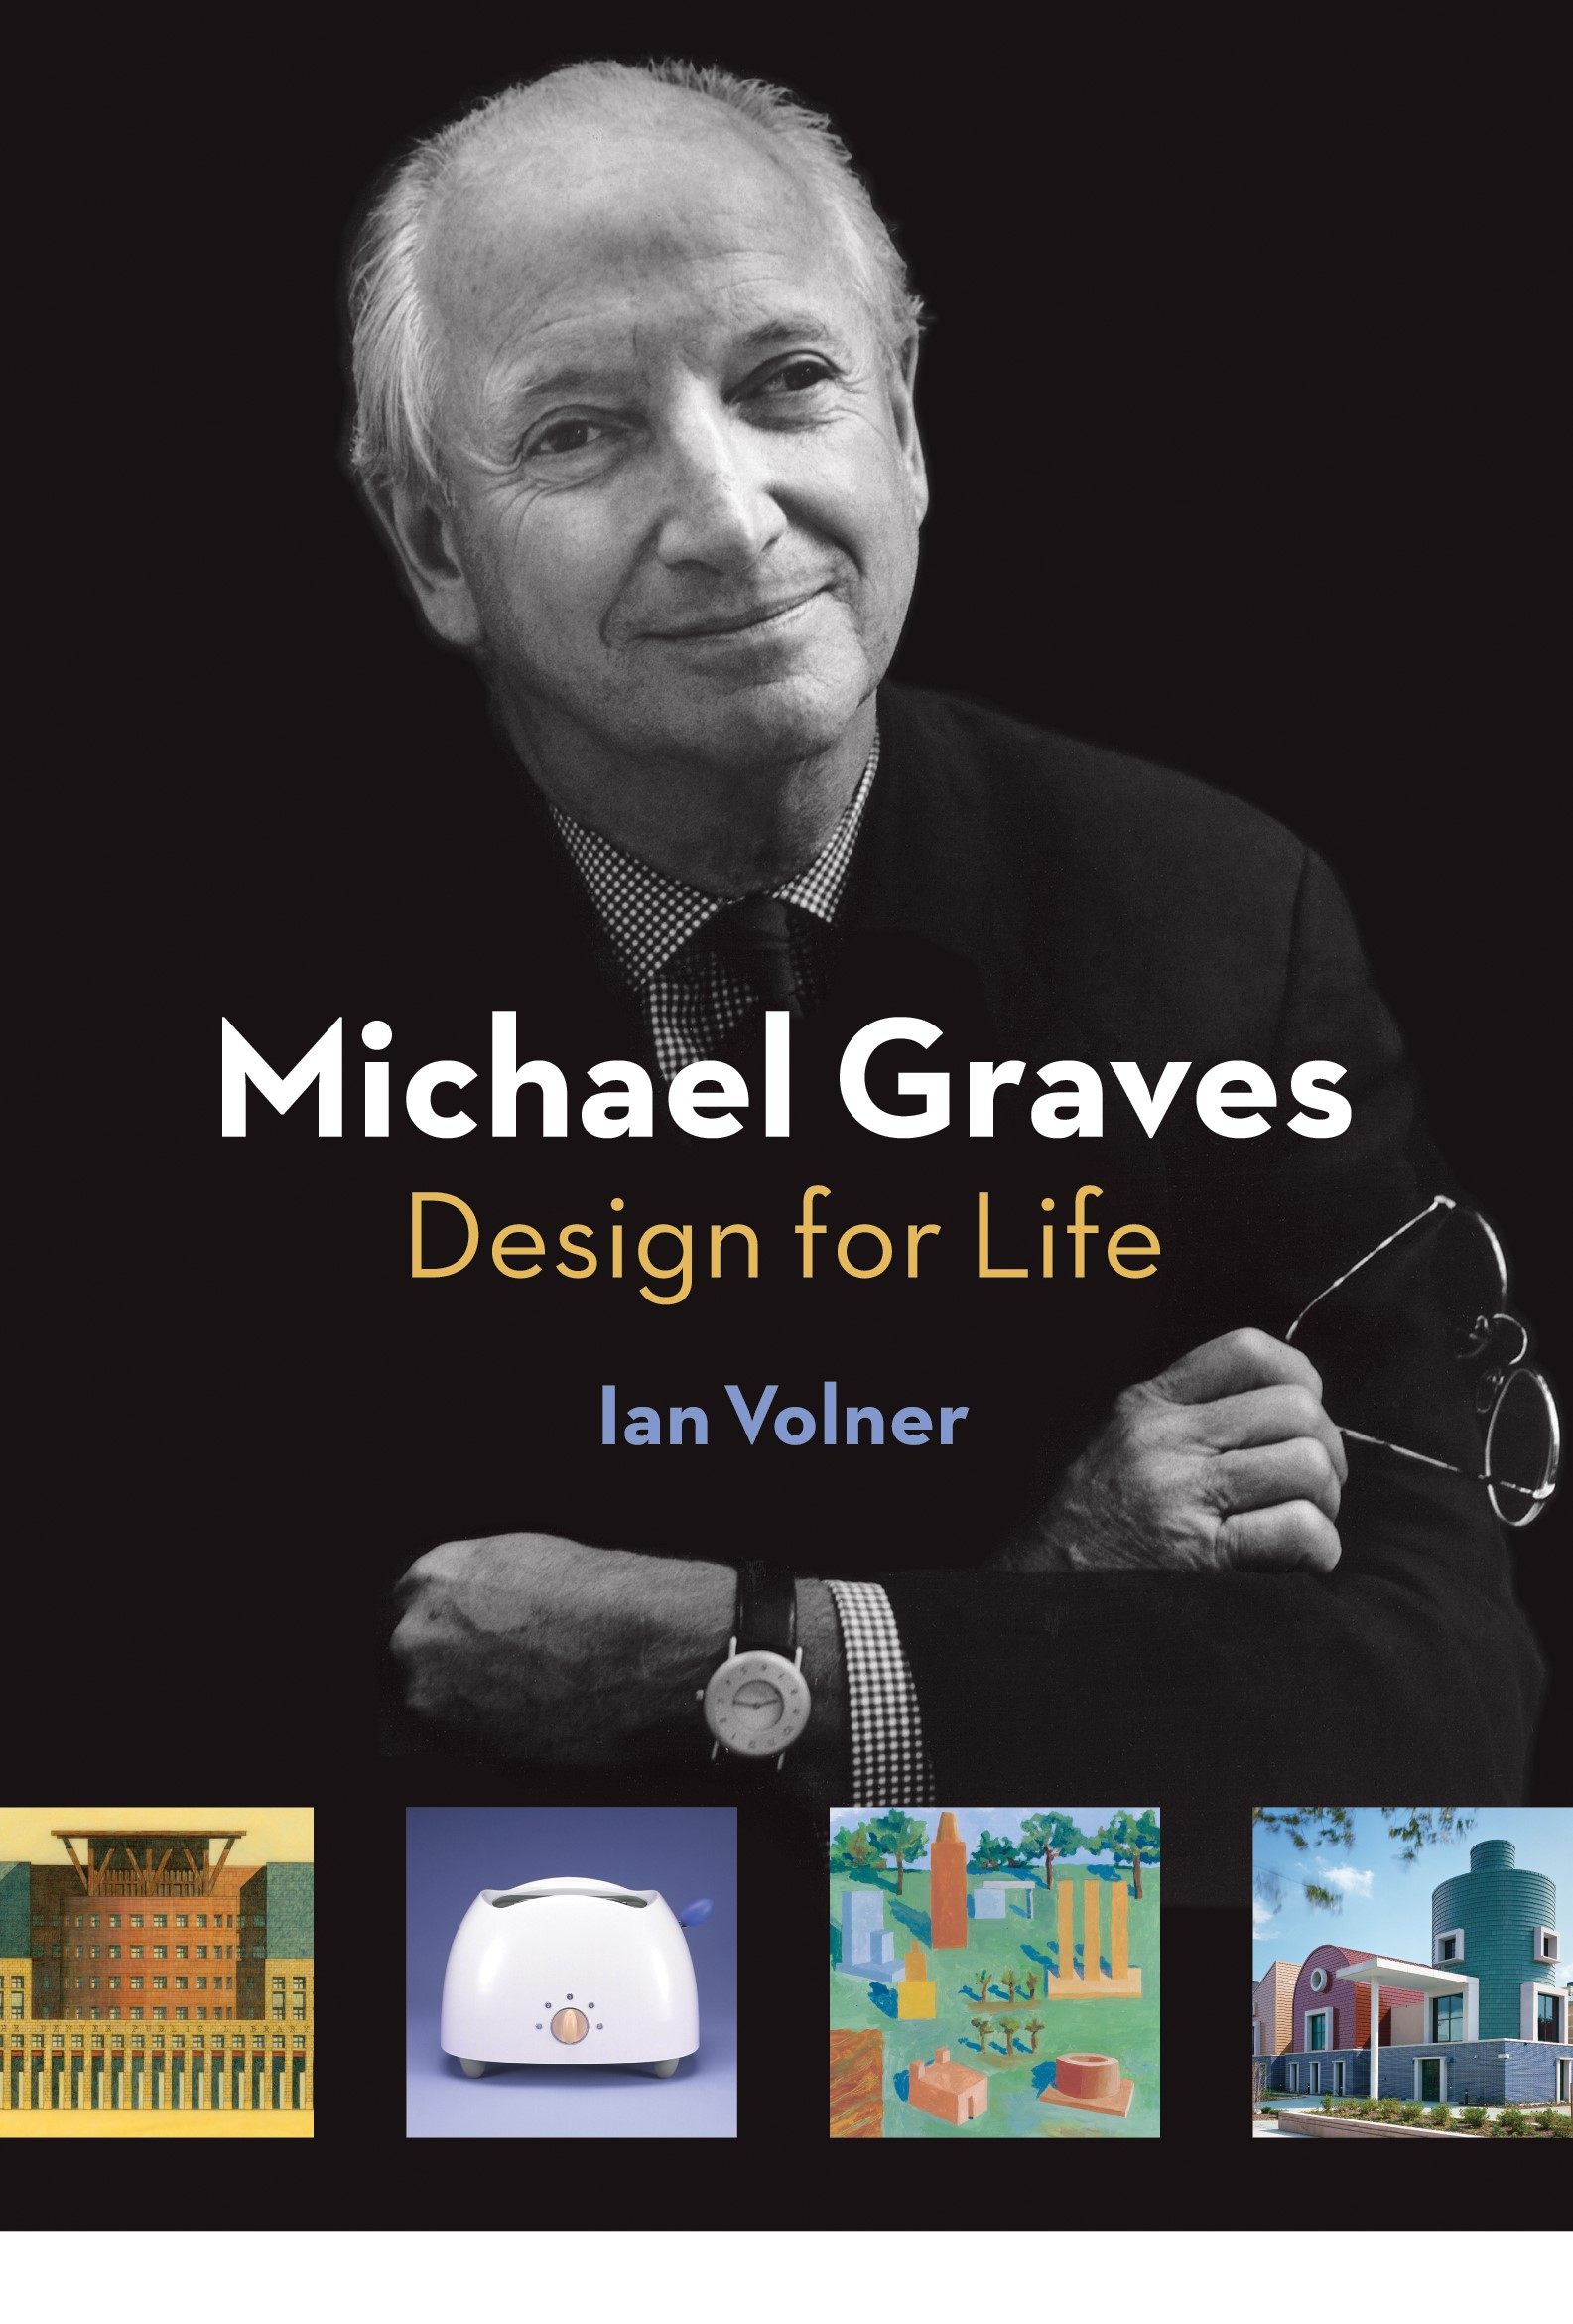 Michael Graves: Design for Life, Ian Volner